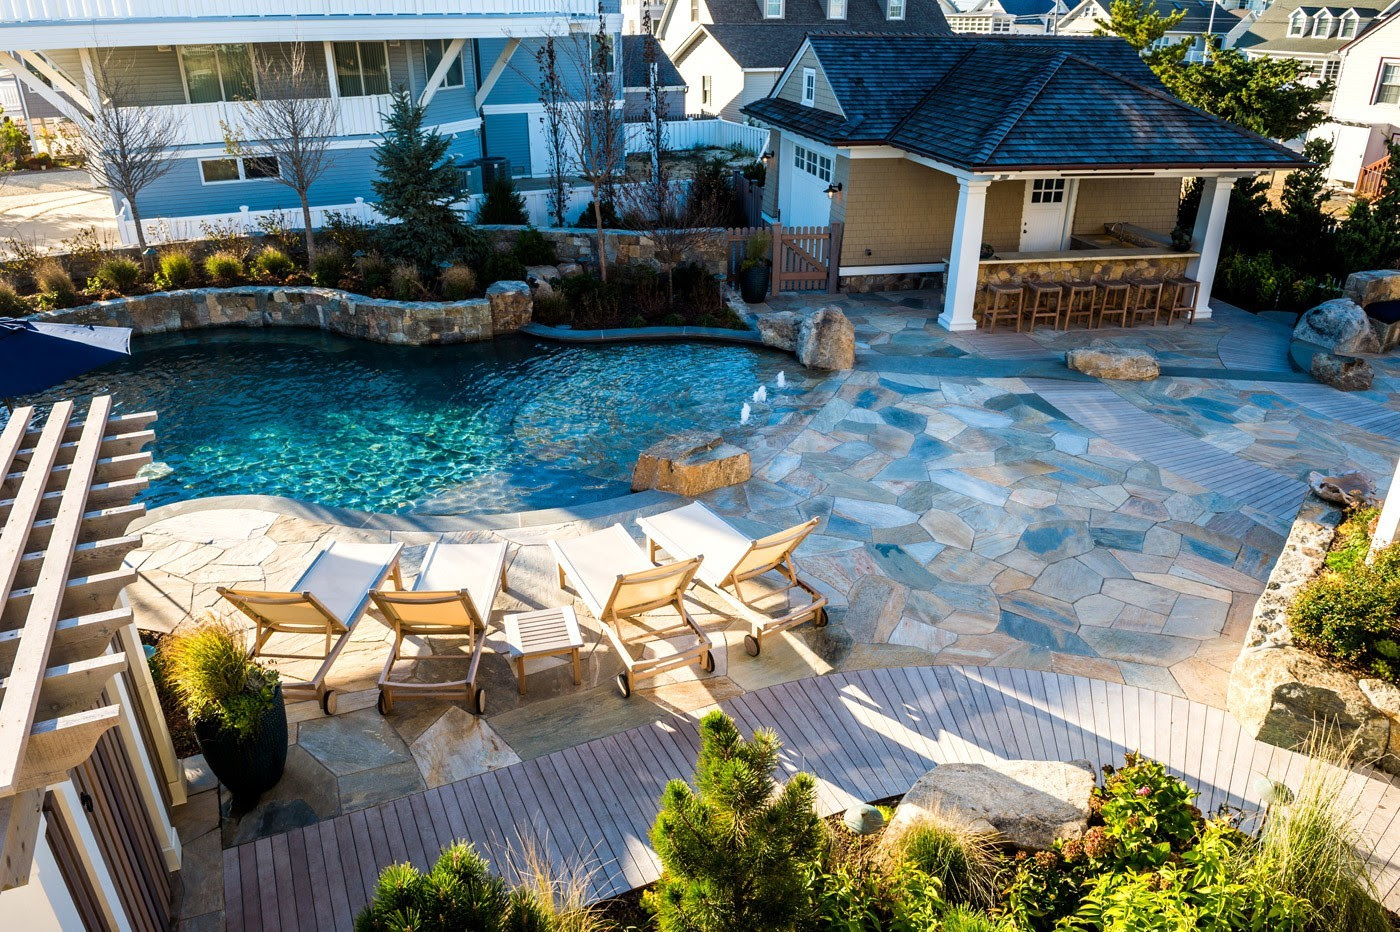 Cording Landscape Design New Jersey Landscaping Pool Estate Spa 1